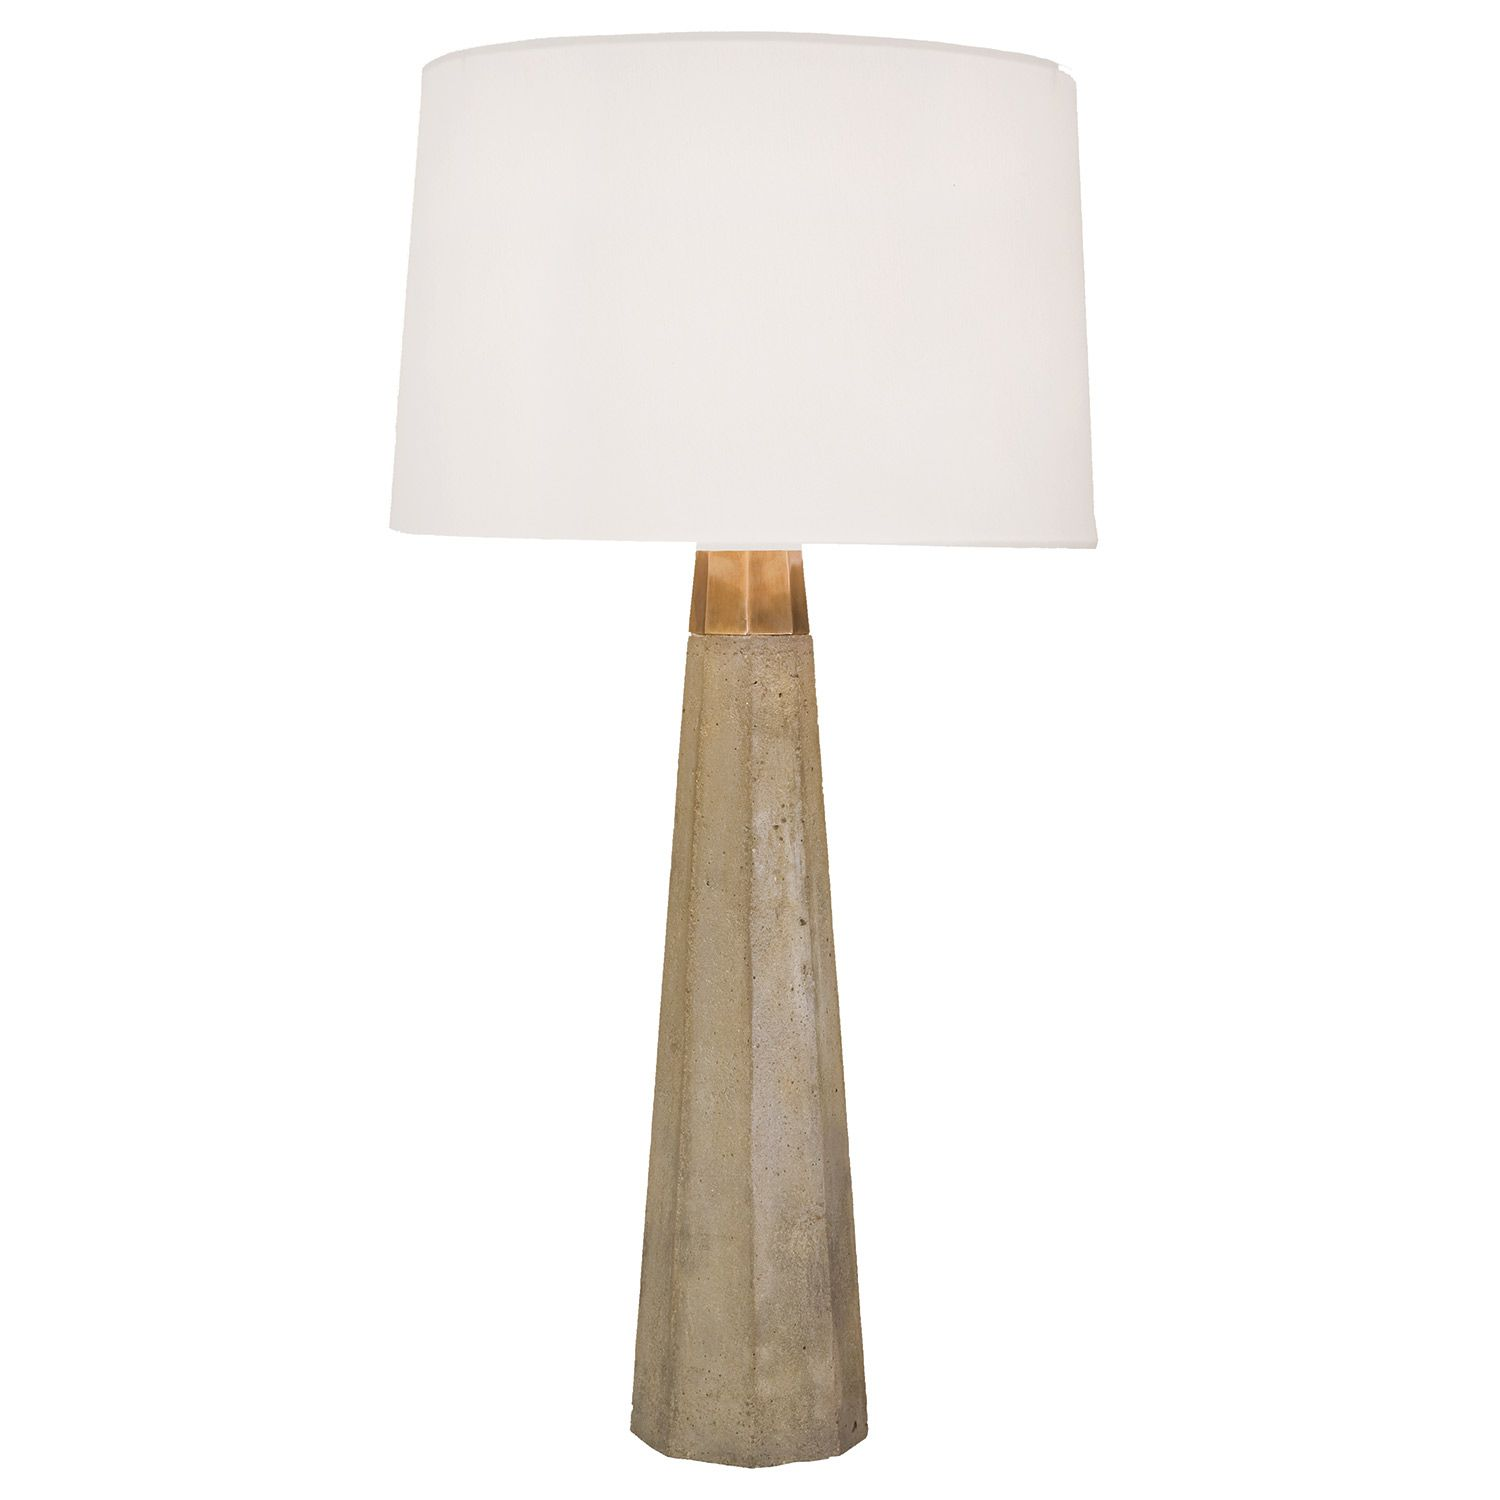 Tall Table Lamps For Bedroom Love This But Too Tall Regina Andrew Concrete And Brass Table